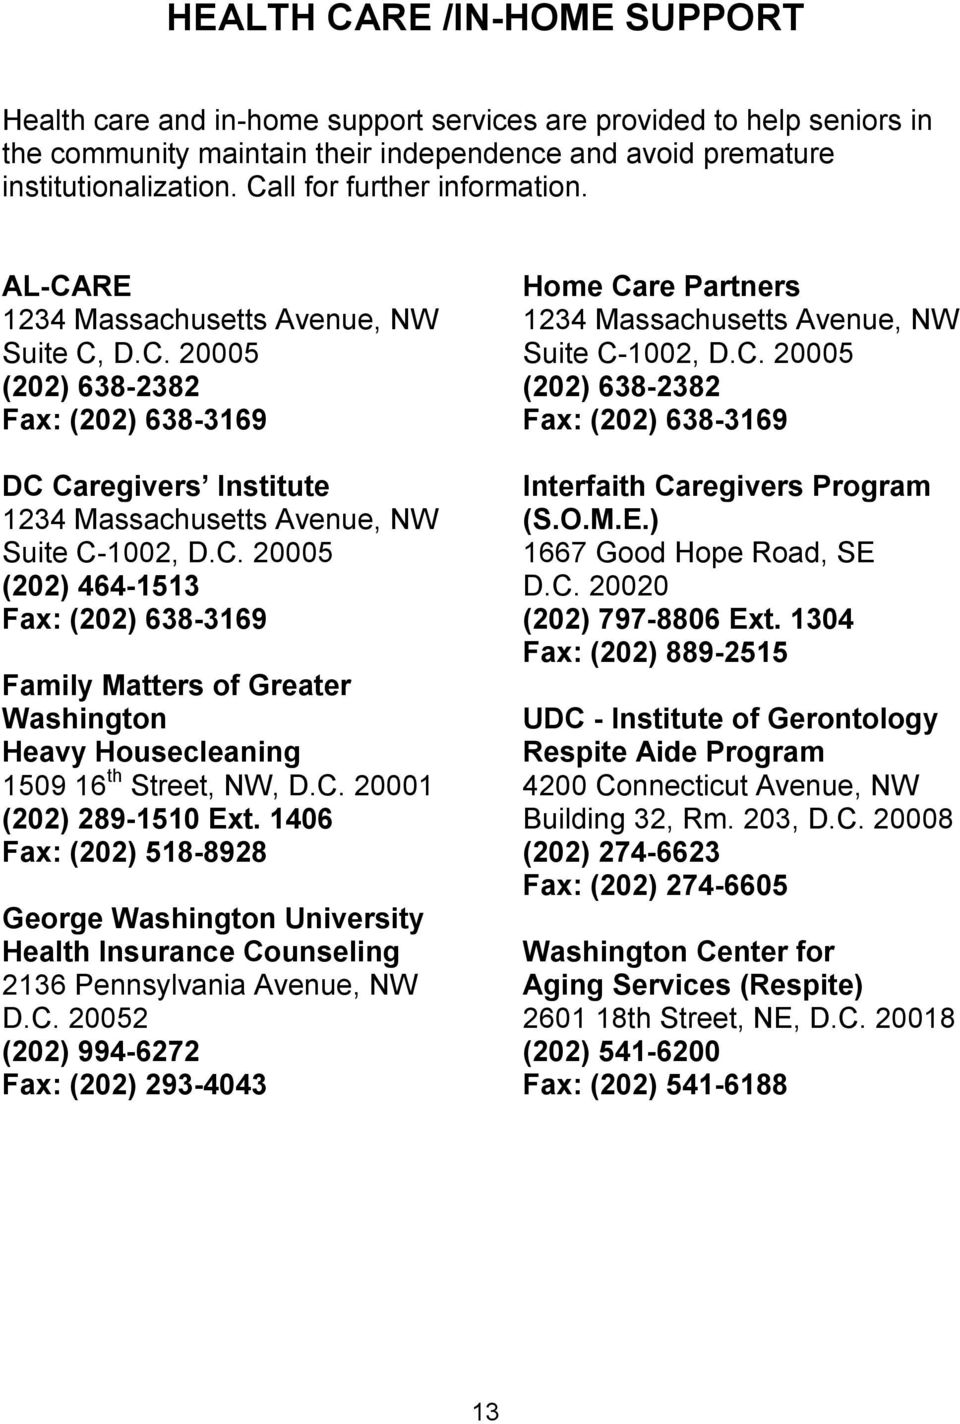 C. 20001 (202) 289-1510 Ext. 1406 Fax: (202) 518-8928 George Washington University Health Insurance Counseling 2136 Pennsylvania Avenue, NW D.C. 20052 (202) 994-6272 Fax: (202) 293-4043 Home Care Partners 1234 Massachusetts Avenue, NW Suite C-1002, D.